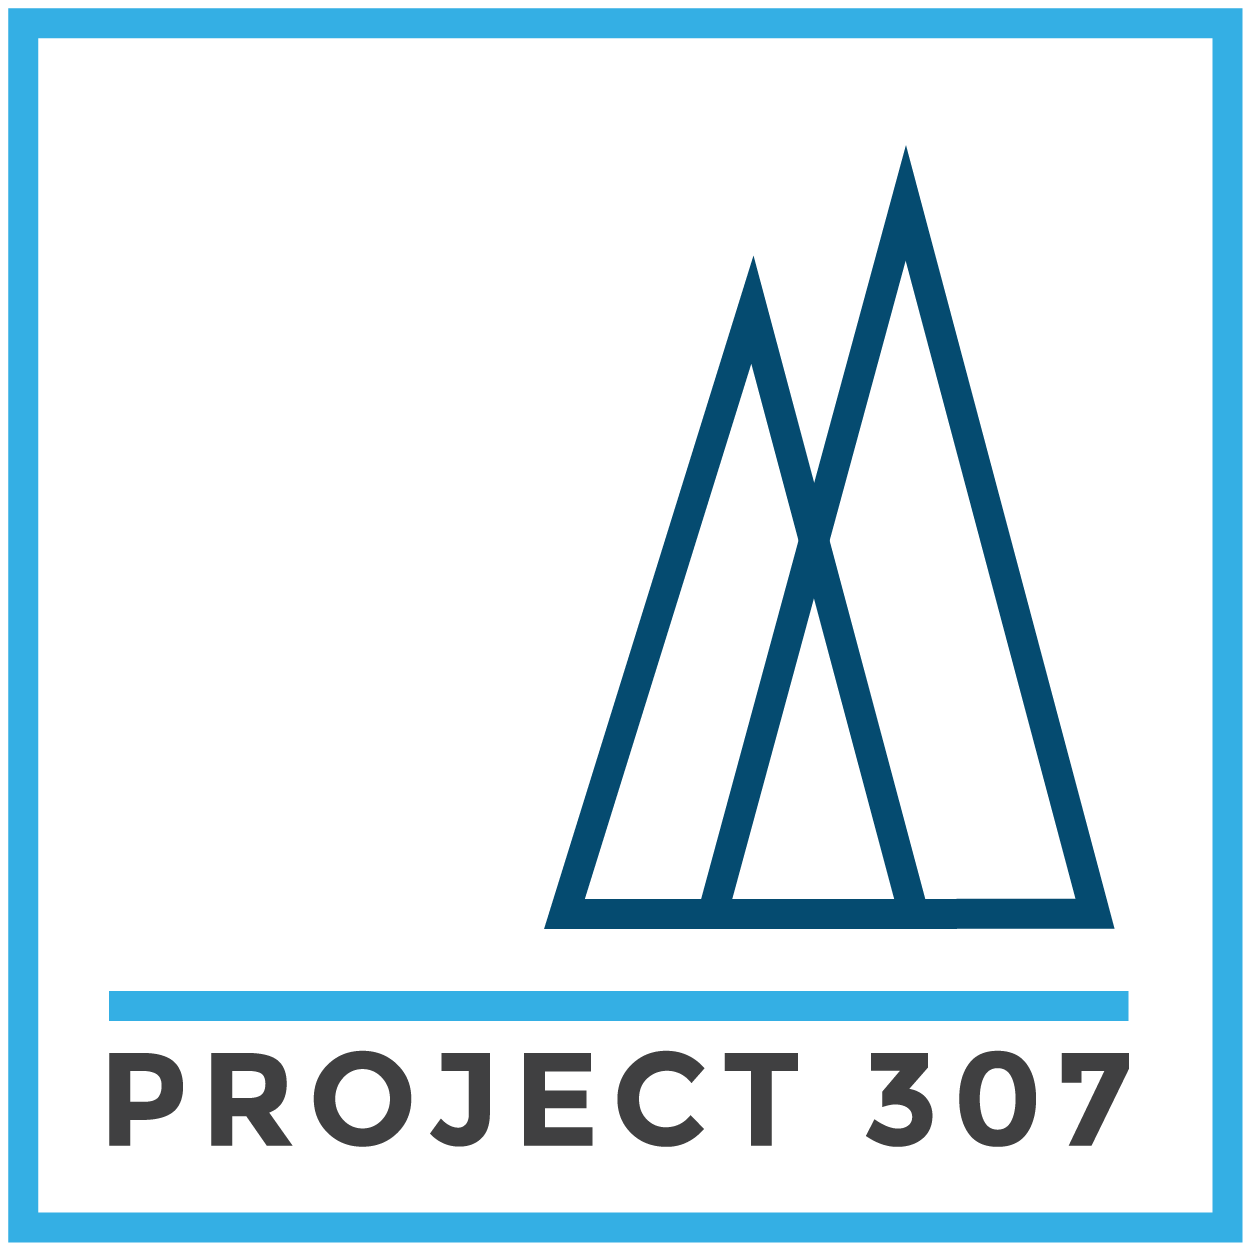 Project 307